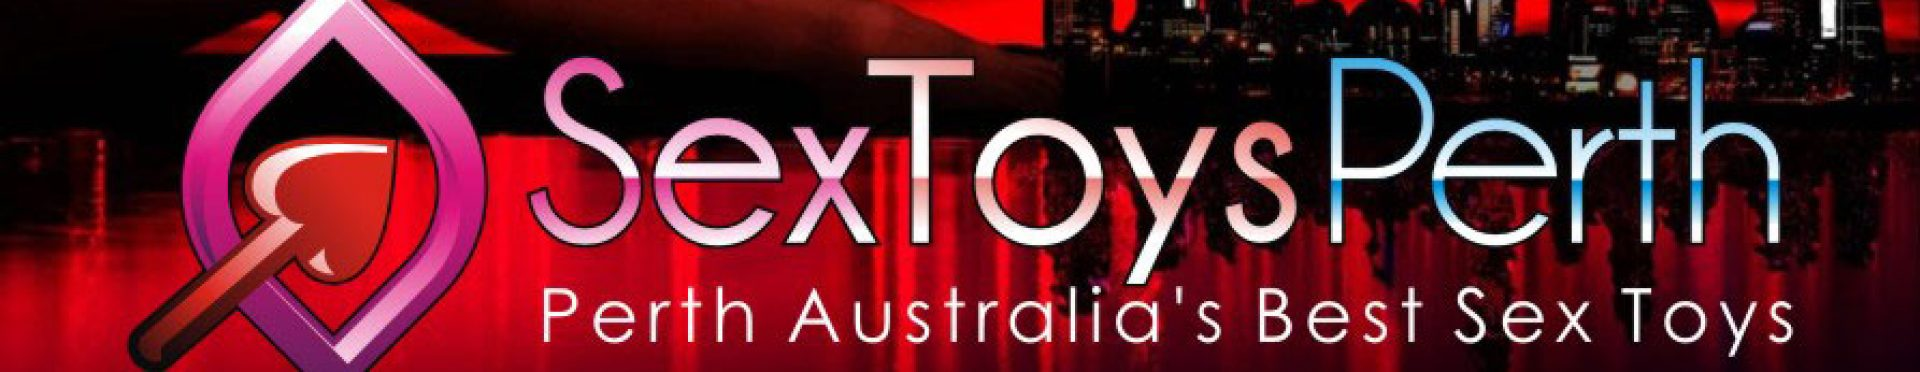 sex toys perth contact